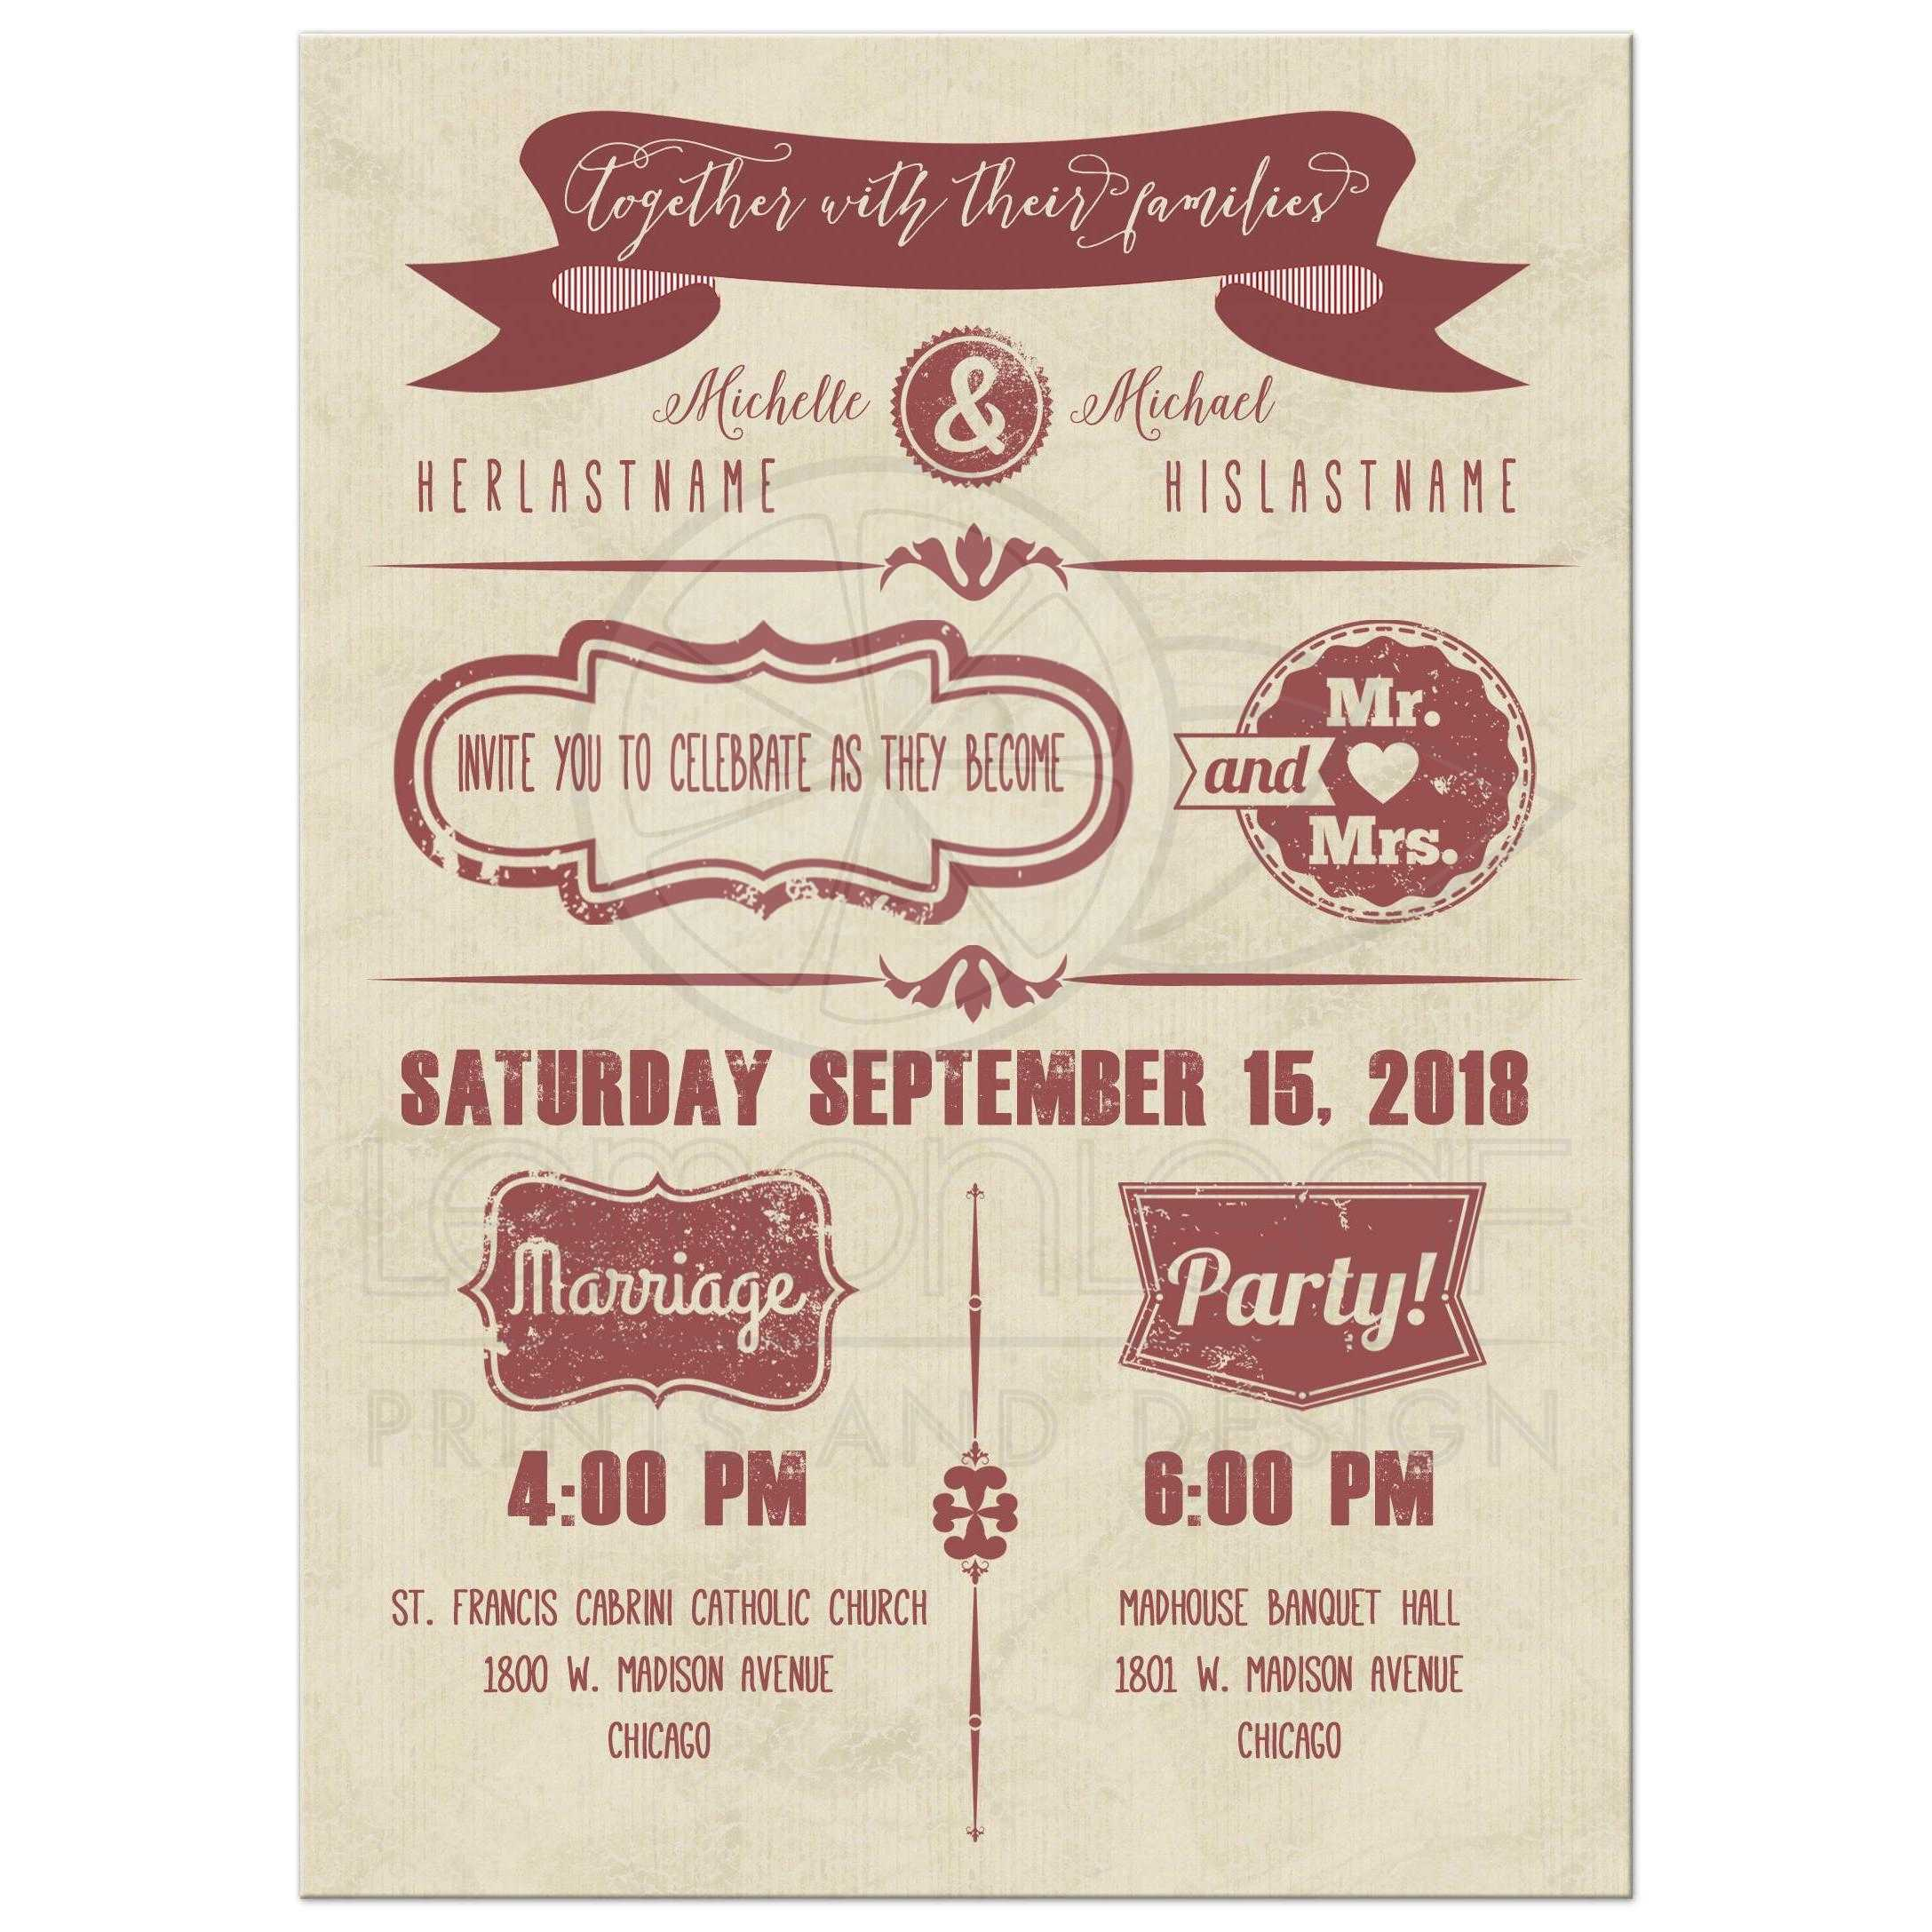 Modern Marsala Typography With Grunge Stamps Wedding Invitation